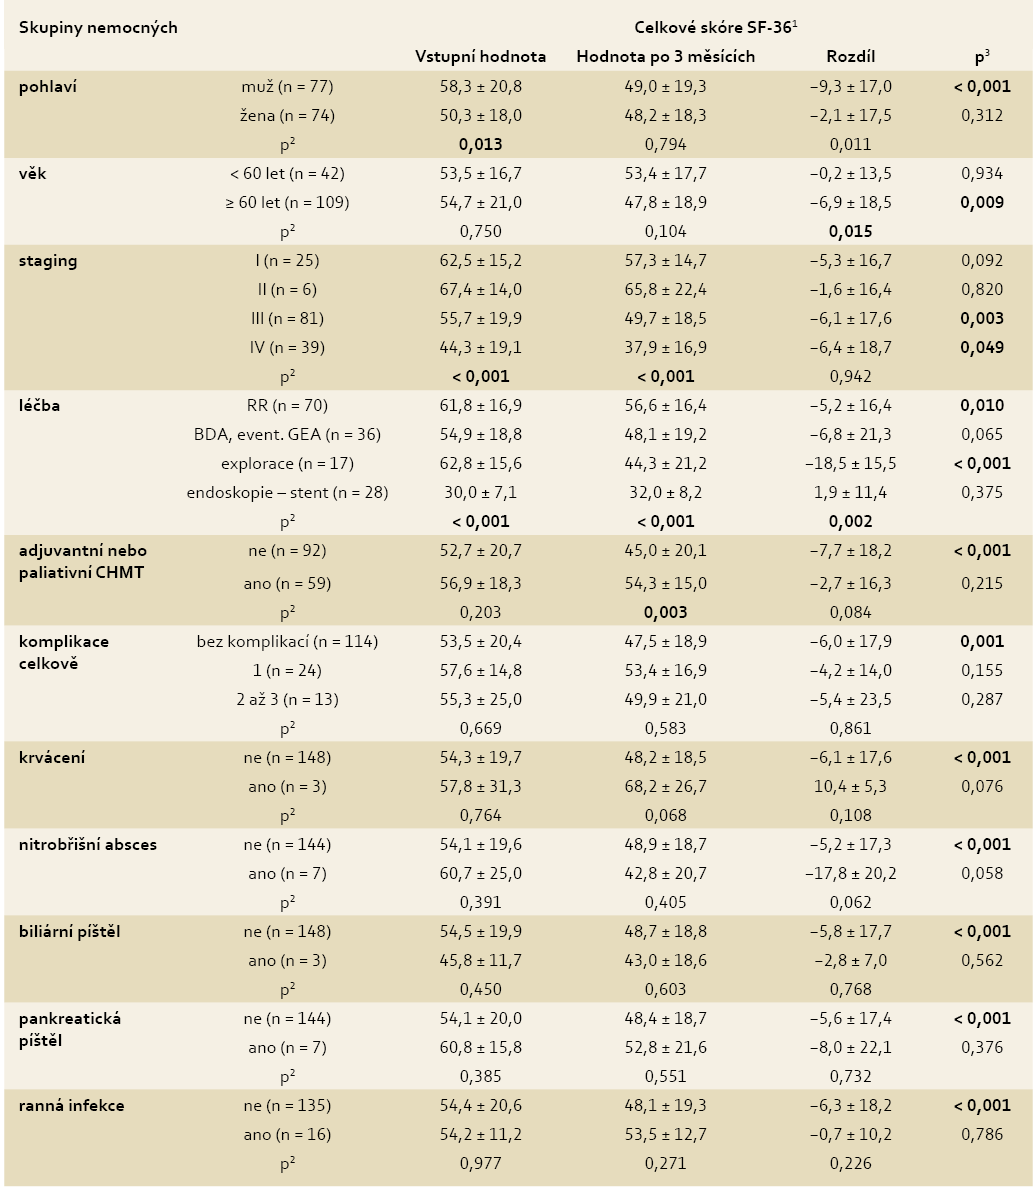 Celkové skóre SF-36 ve vztahu k nemocnému s C CaP a charakteristice onemocnění (n = 151). Tab. 3. The total score of the SF-36 in relation to a patient with CaP and disease characteristics (n = 151).